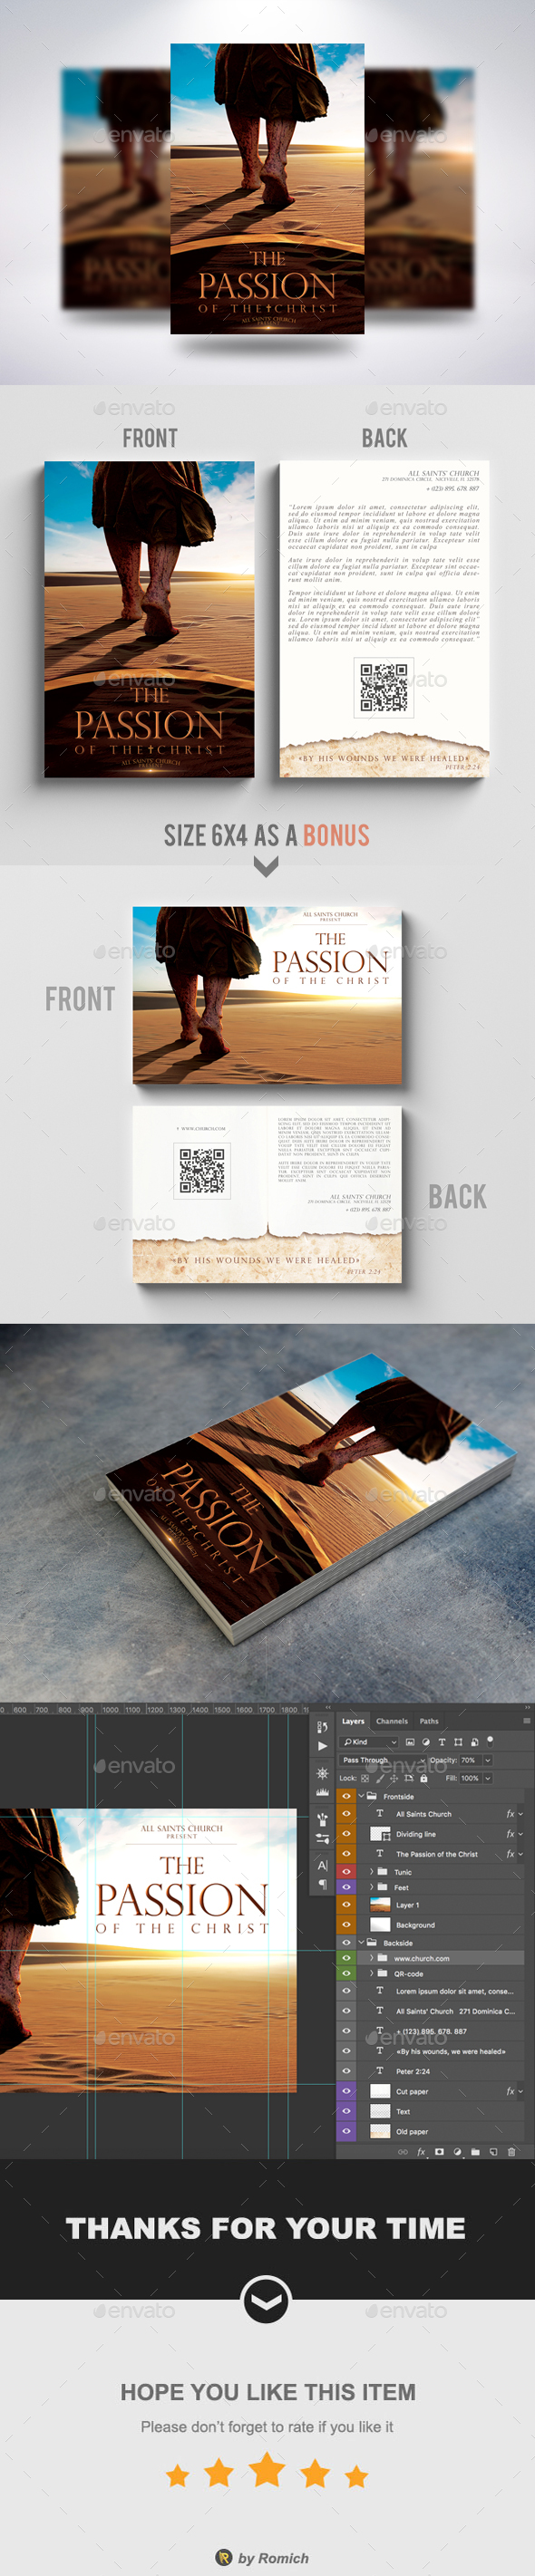 The Passion Of The Christ - Church Flyers